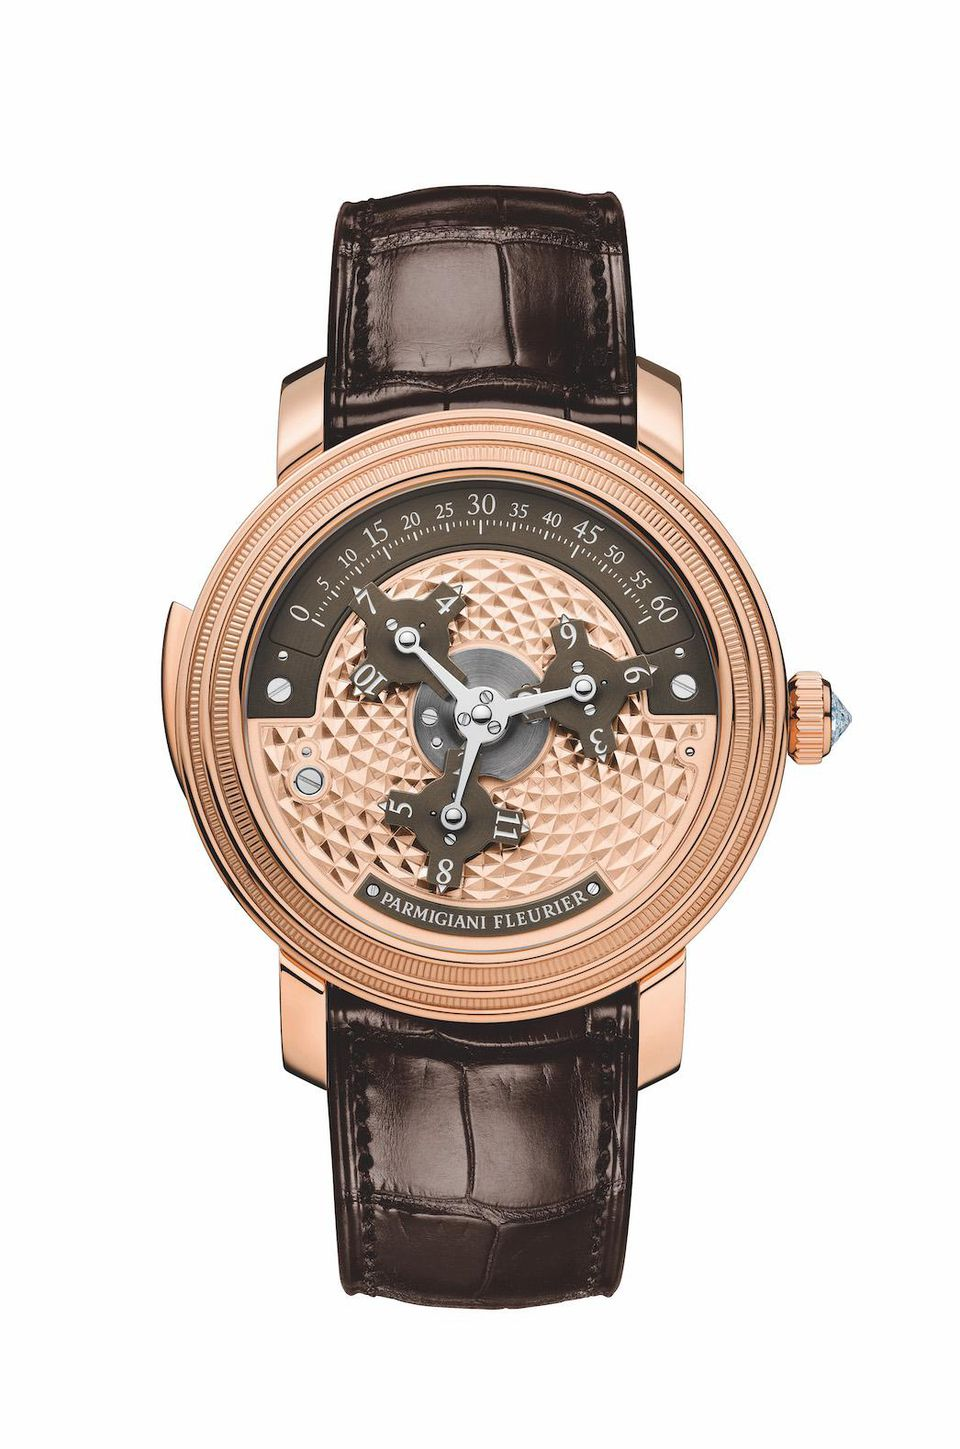 PARMIGIANI FLEURIER TORIC CAPITOLE WATCH INSPIRED BY ROMAN ARCHITECTURE 360.000$